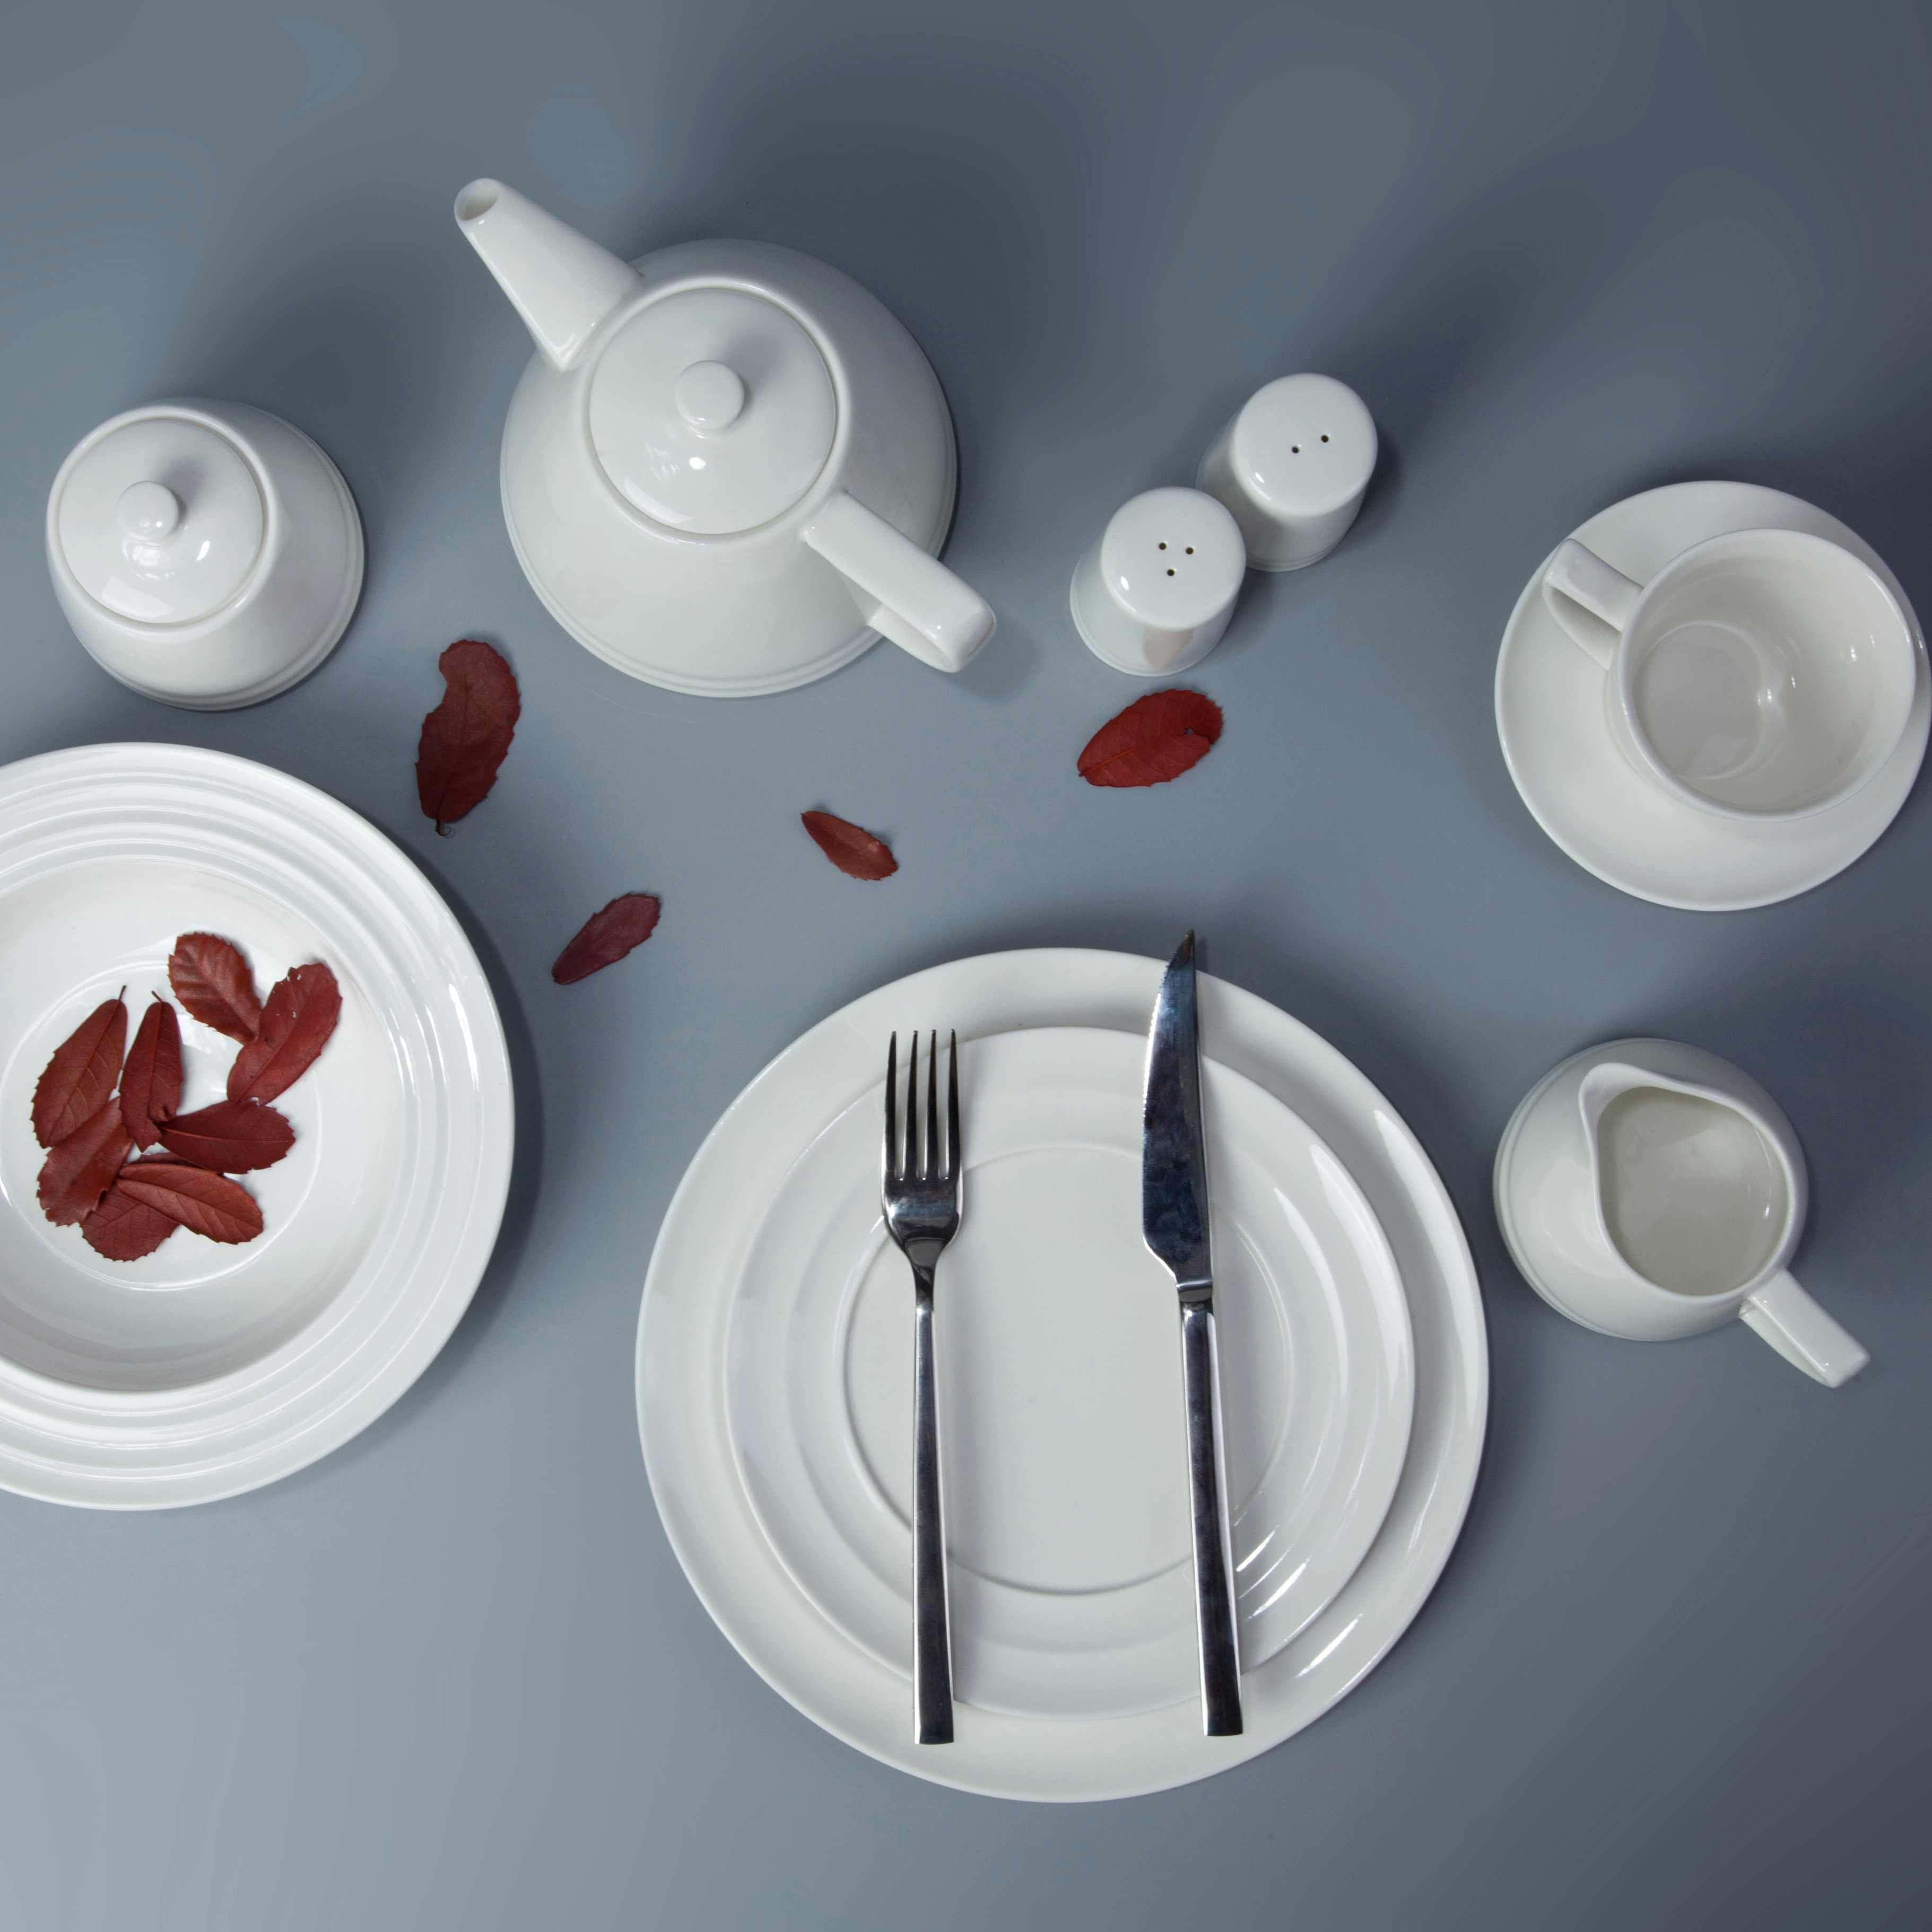 Two Eight White ceramic dinnerware set - YANG LIU SERIES White Porcelain Dinner Set image8